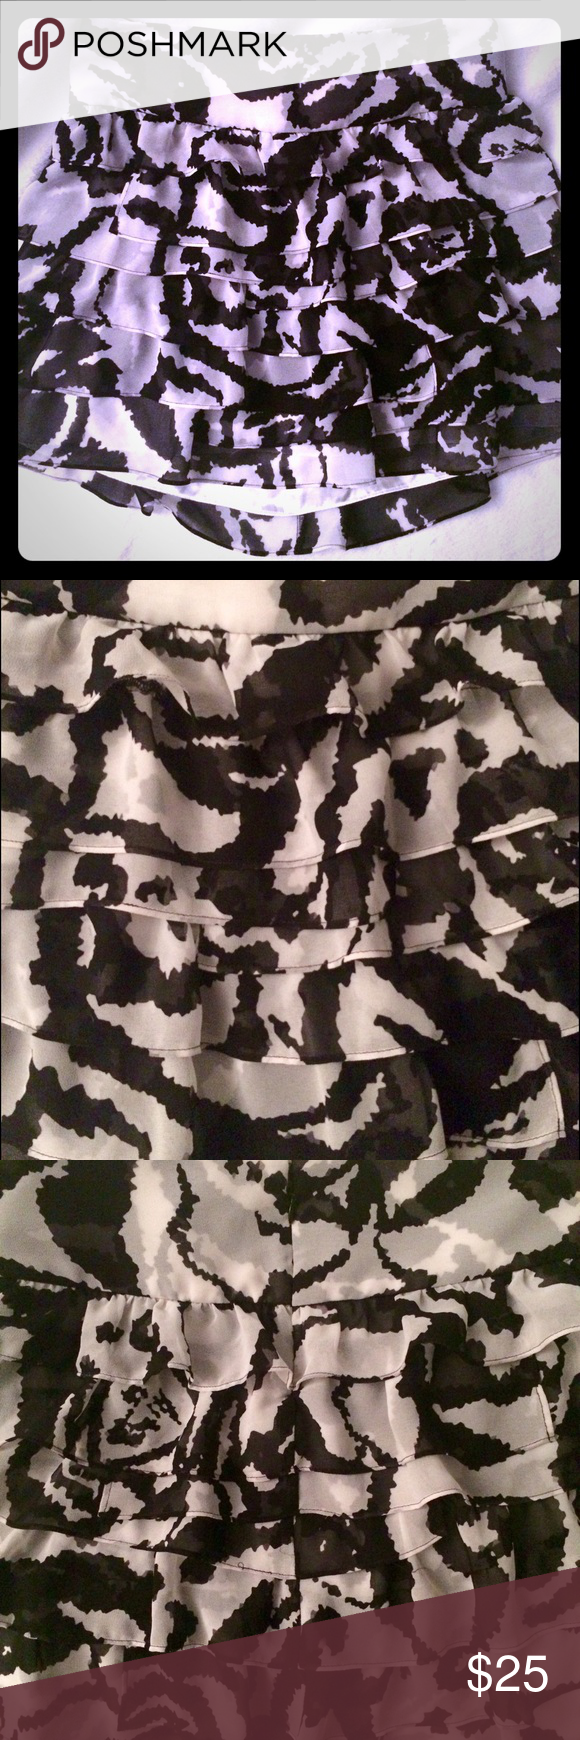 Black and white layered skirt size 0 Beautiful black and white pattern. Layers/ruffles create a lot of movement. Zips at back. Reasonable offers welcome! Express Skirts Mini